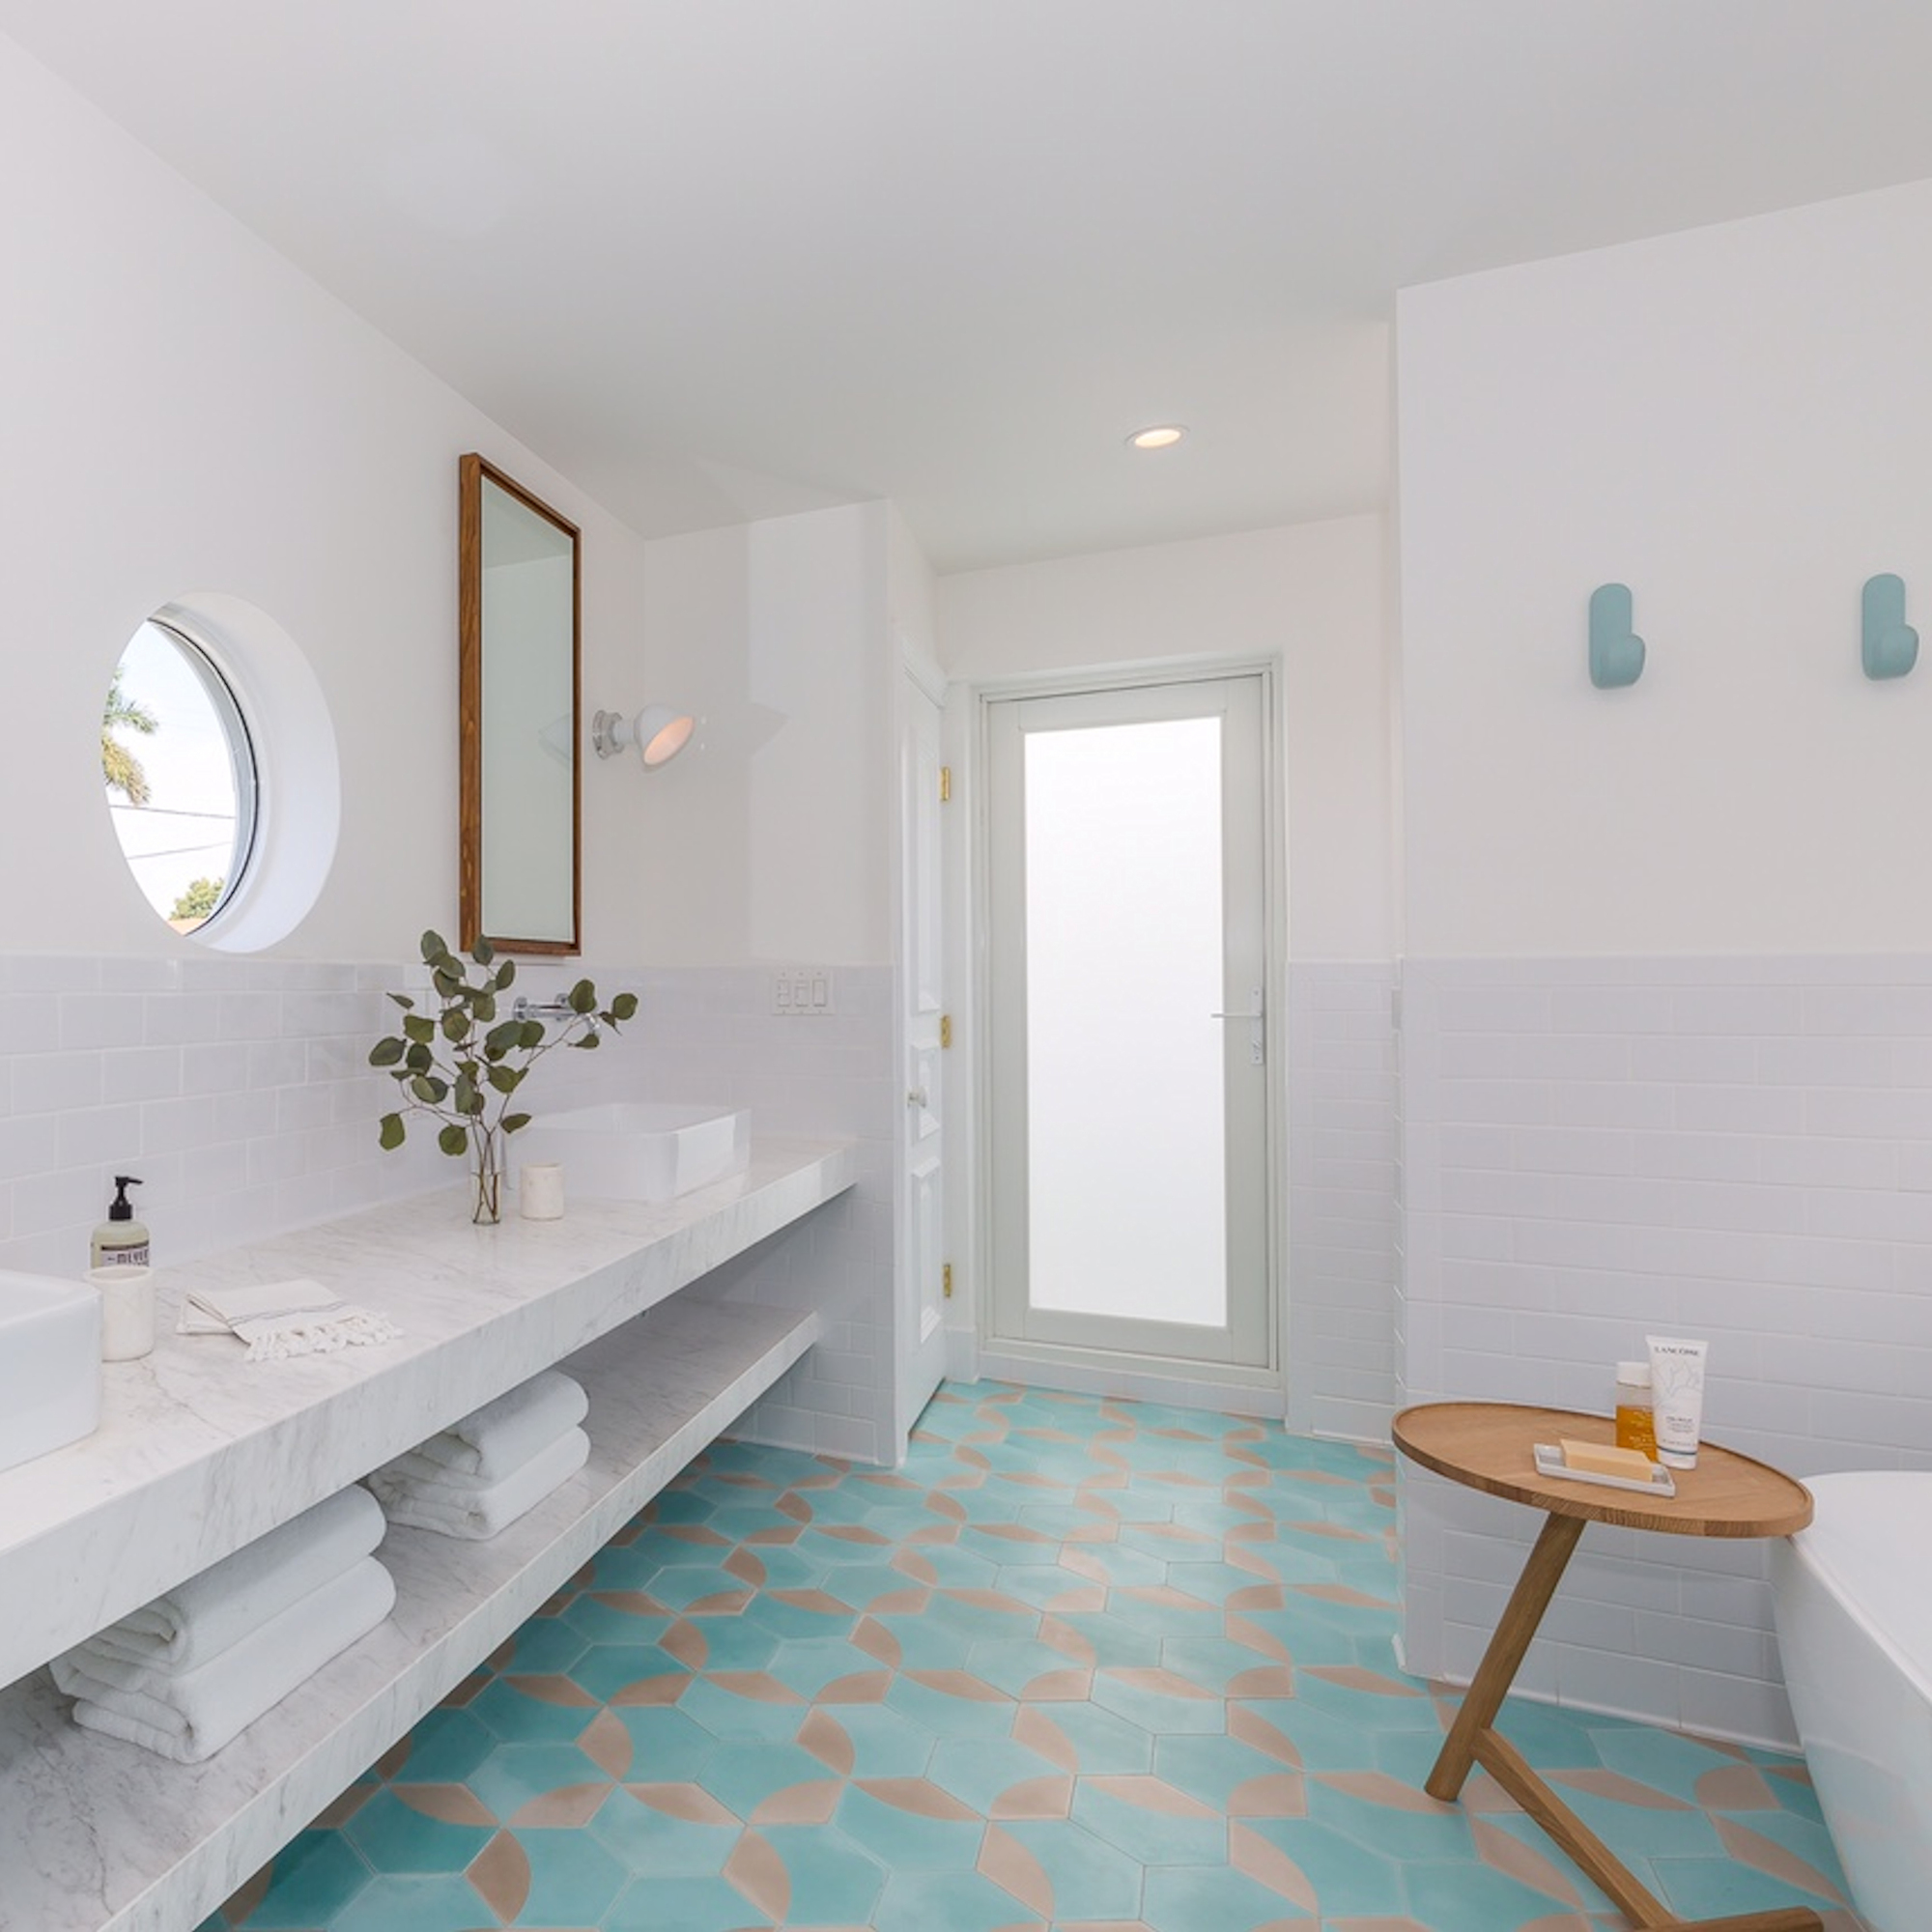 An elegant cement tile bathroom floor, with matching border, from Villa Lagoon Tile.